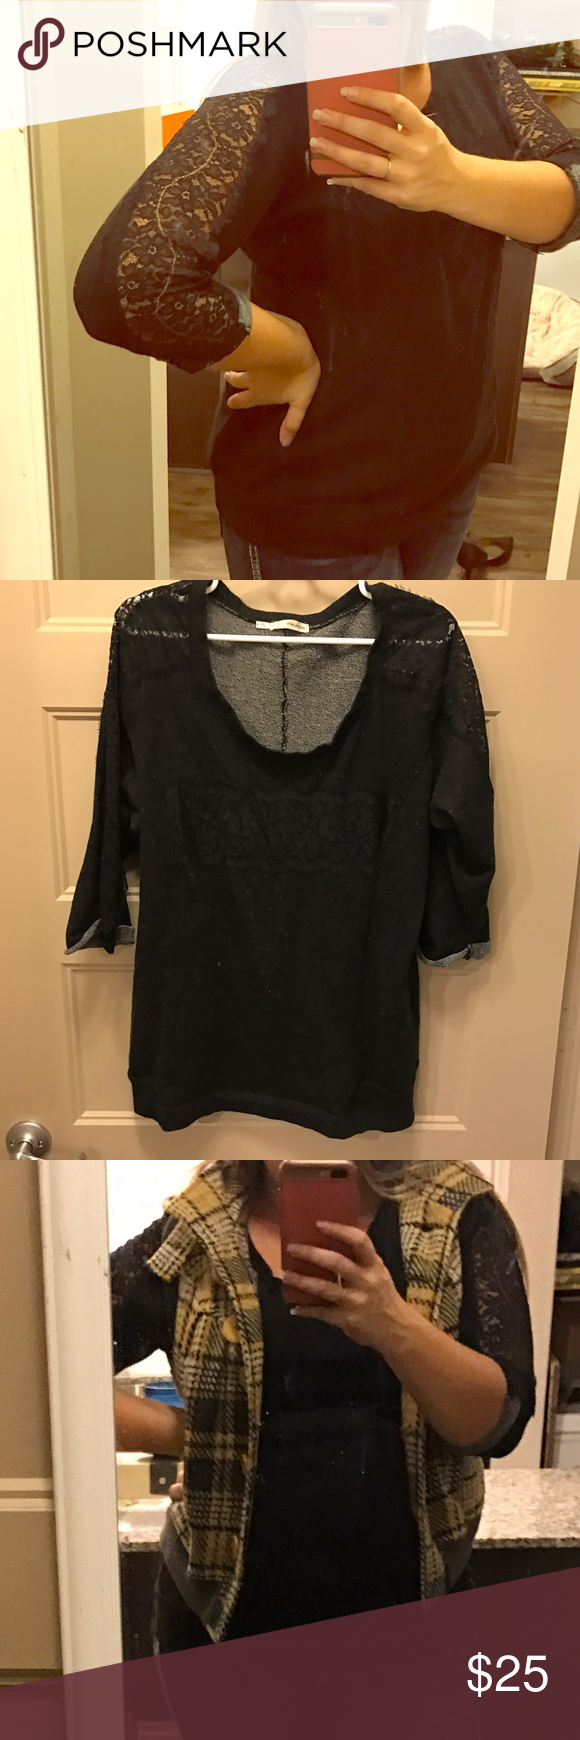 Black Maurices Lace Sweater Black Maurices Lace Sweater Maurices Sweaters Crew & Scoop Necks